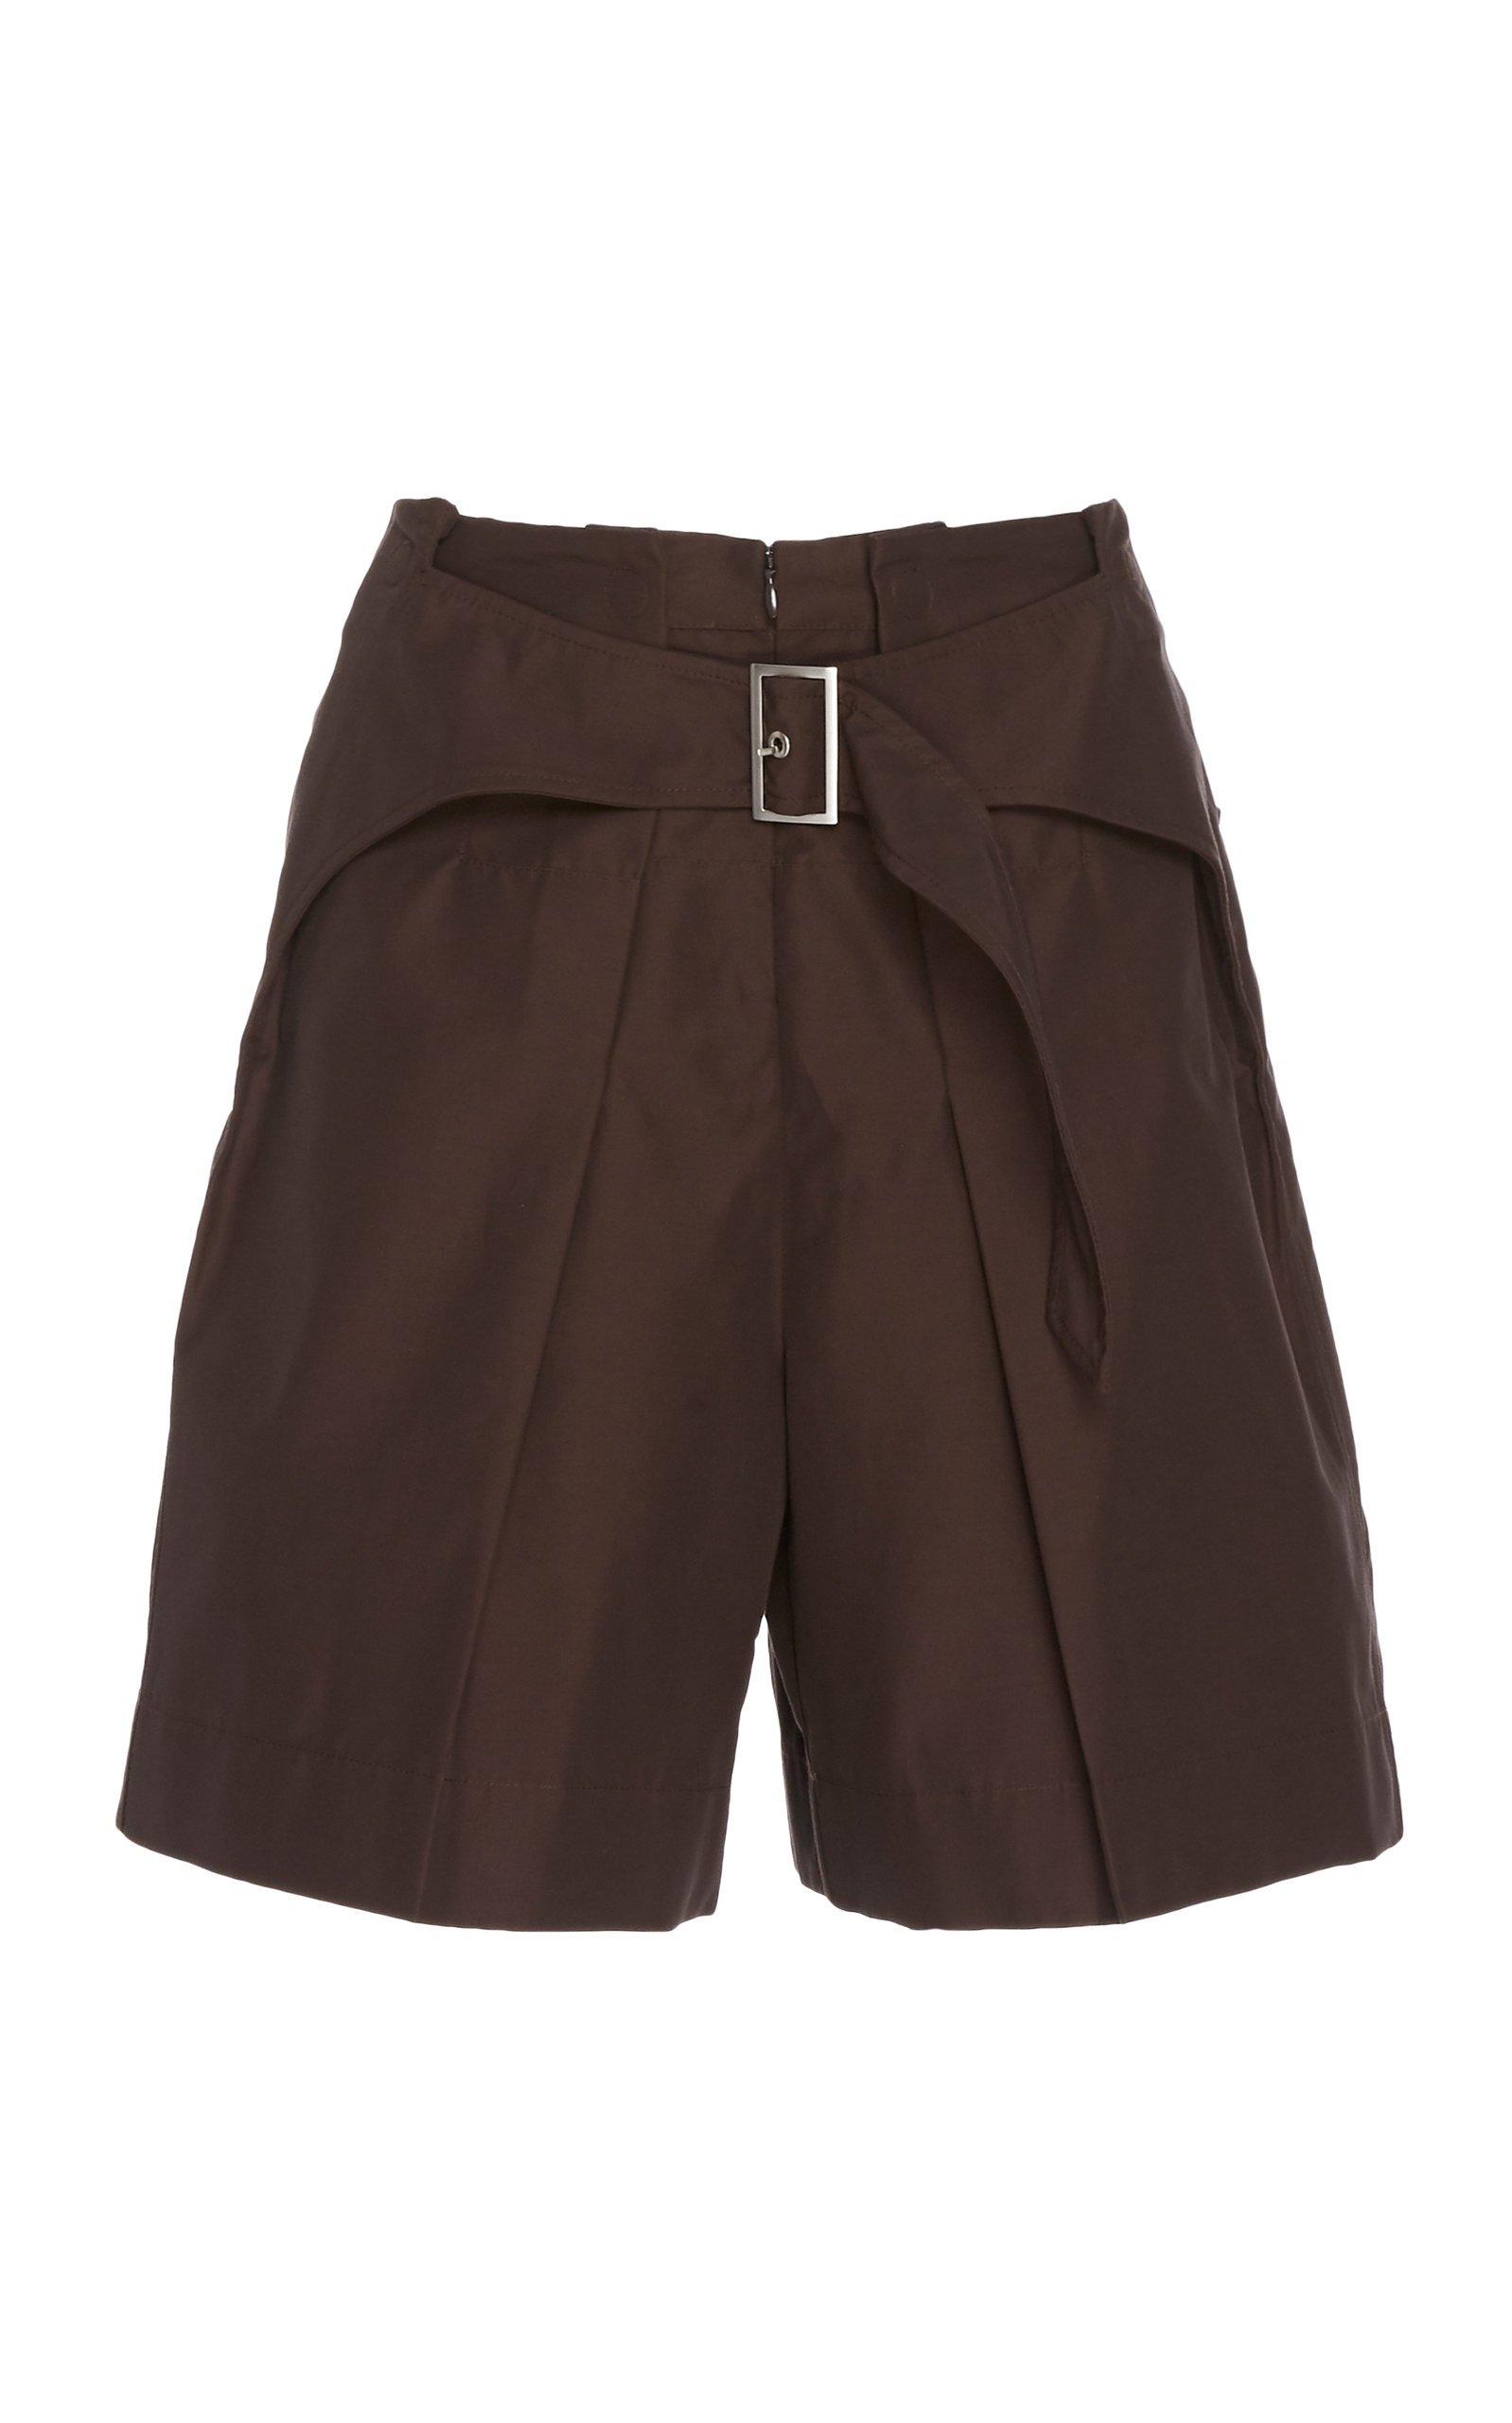 3.1 Phillip Lim Utility belted high waisted short Size: 12